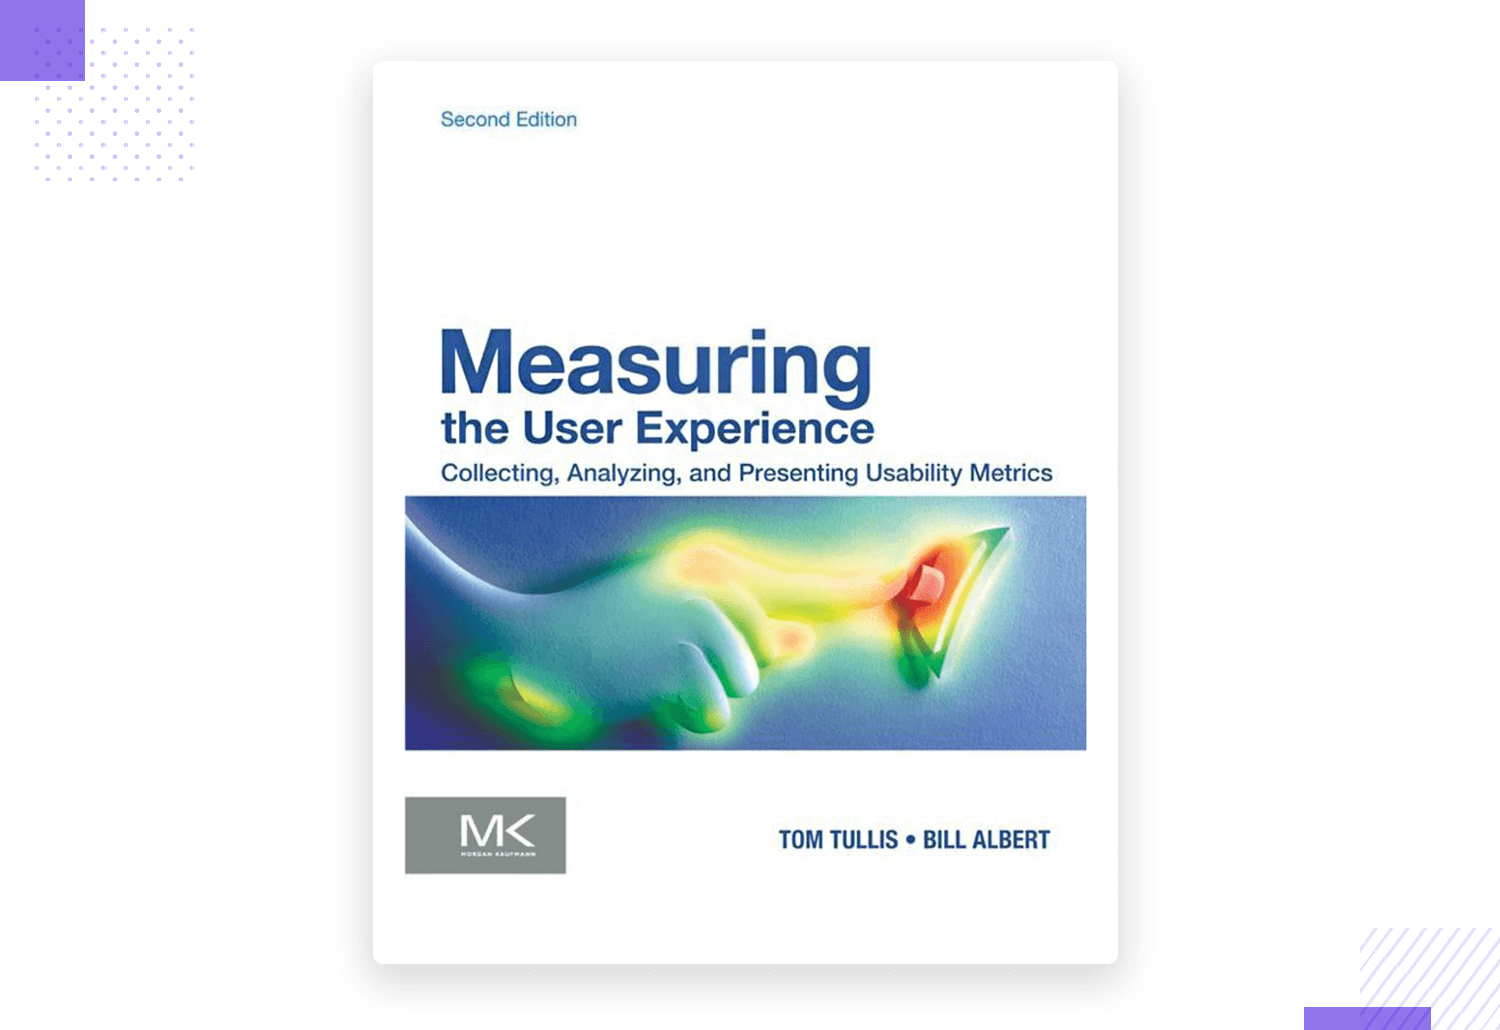 measuring the user experience - ux design book on usability